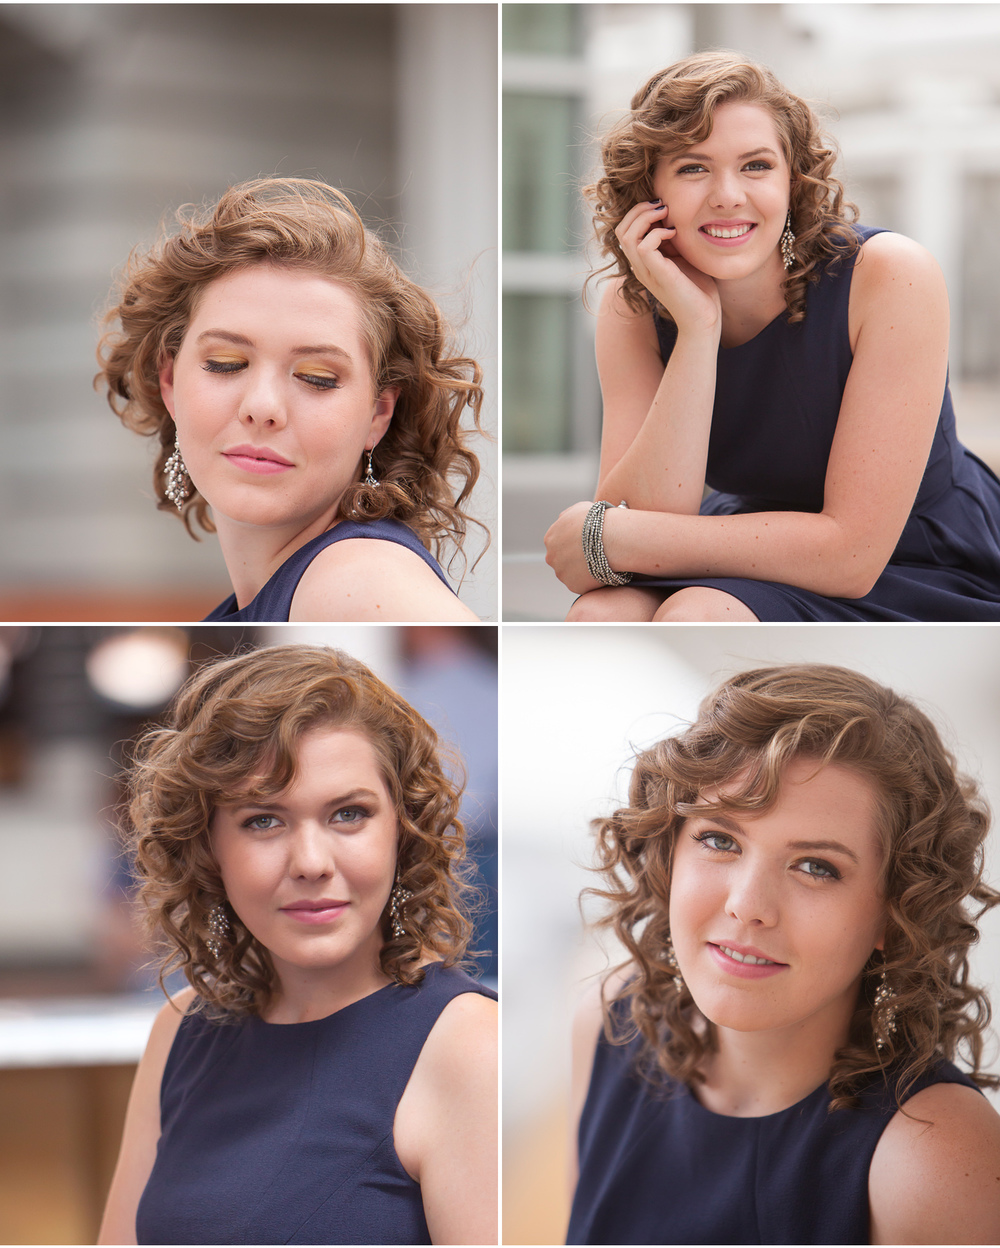 Couture Style High School Senior Portraits at Union Station Denver, with photographer Jennifer Koskinen | Merritt Portrait Studio